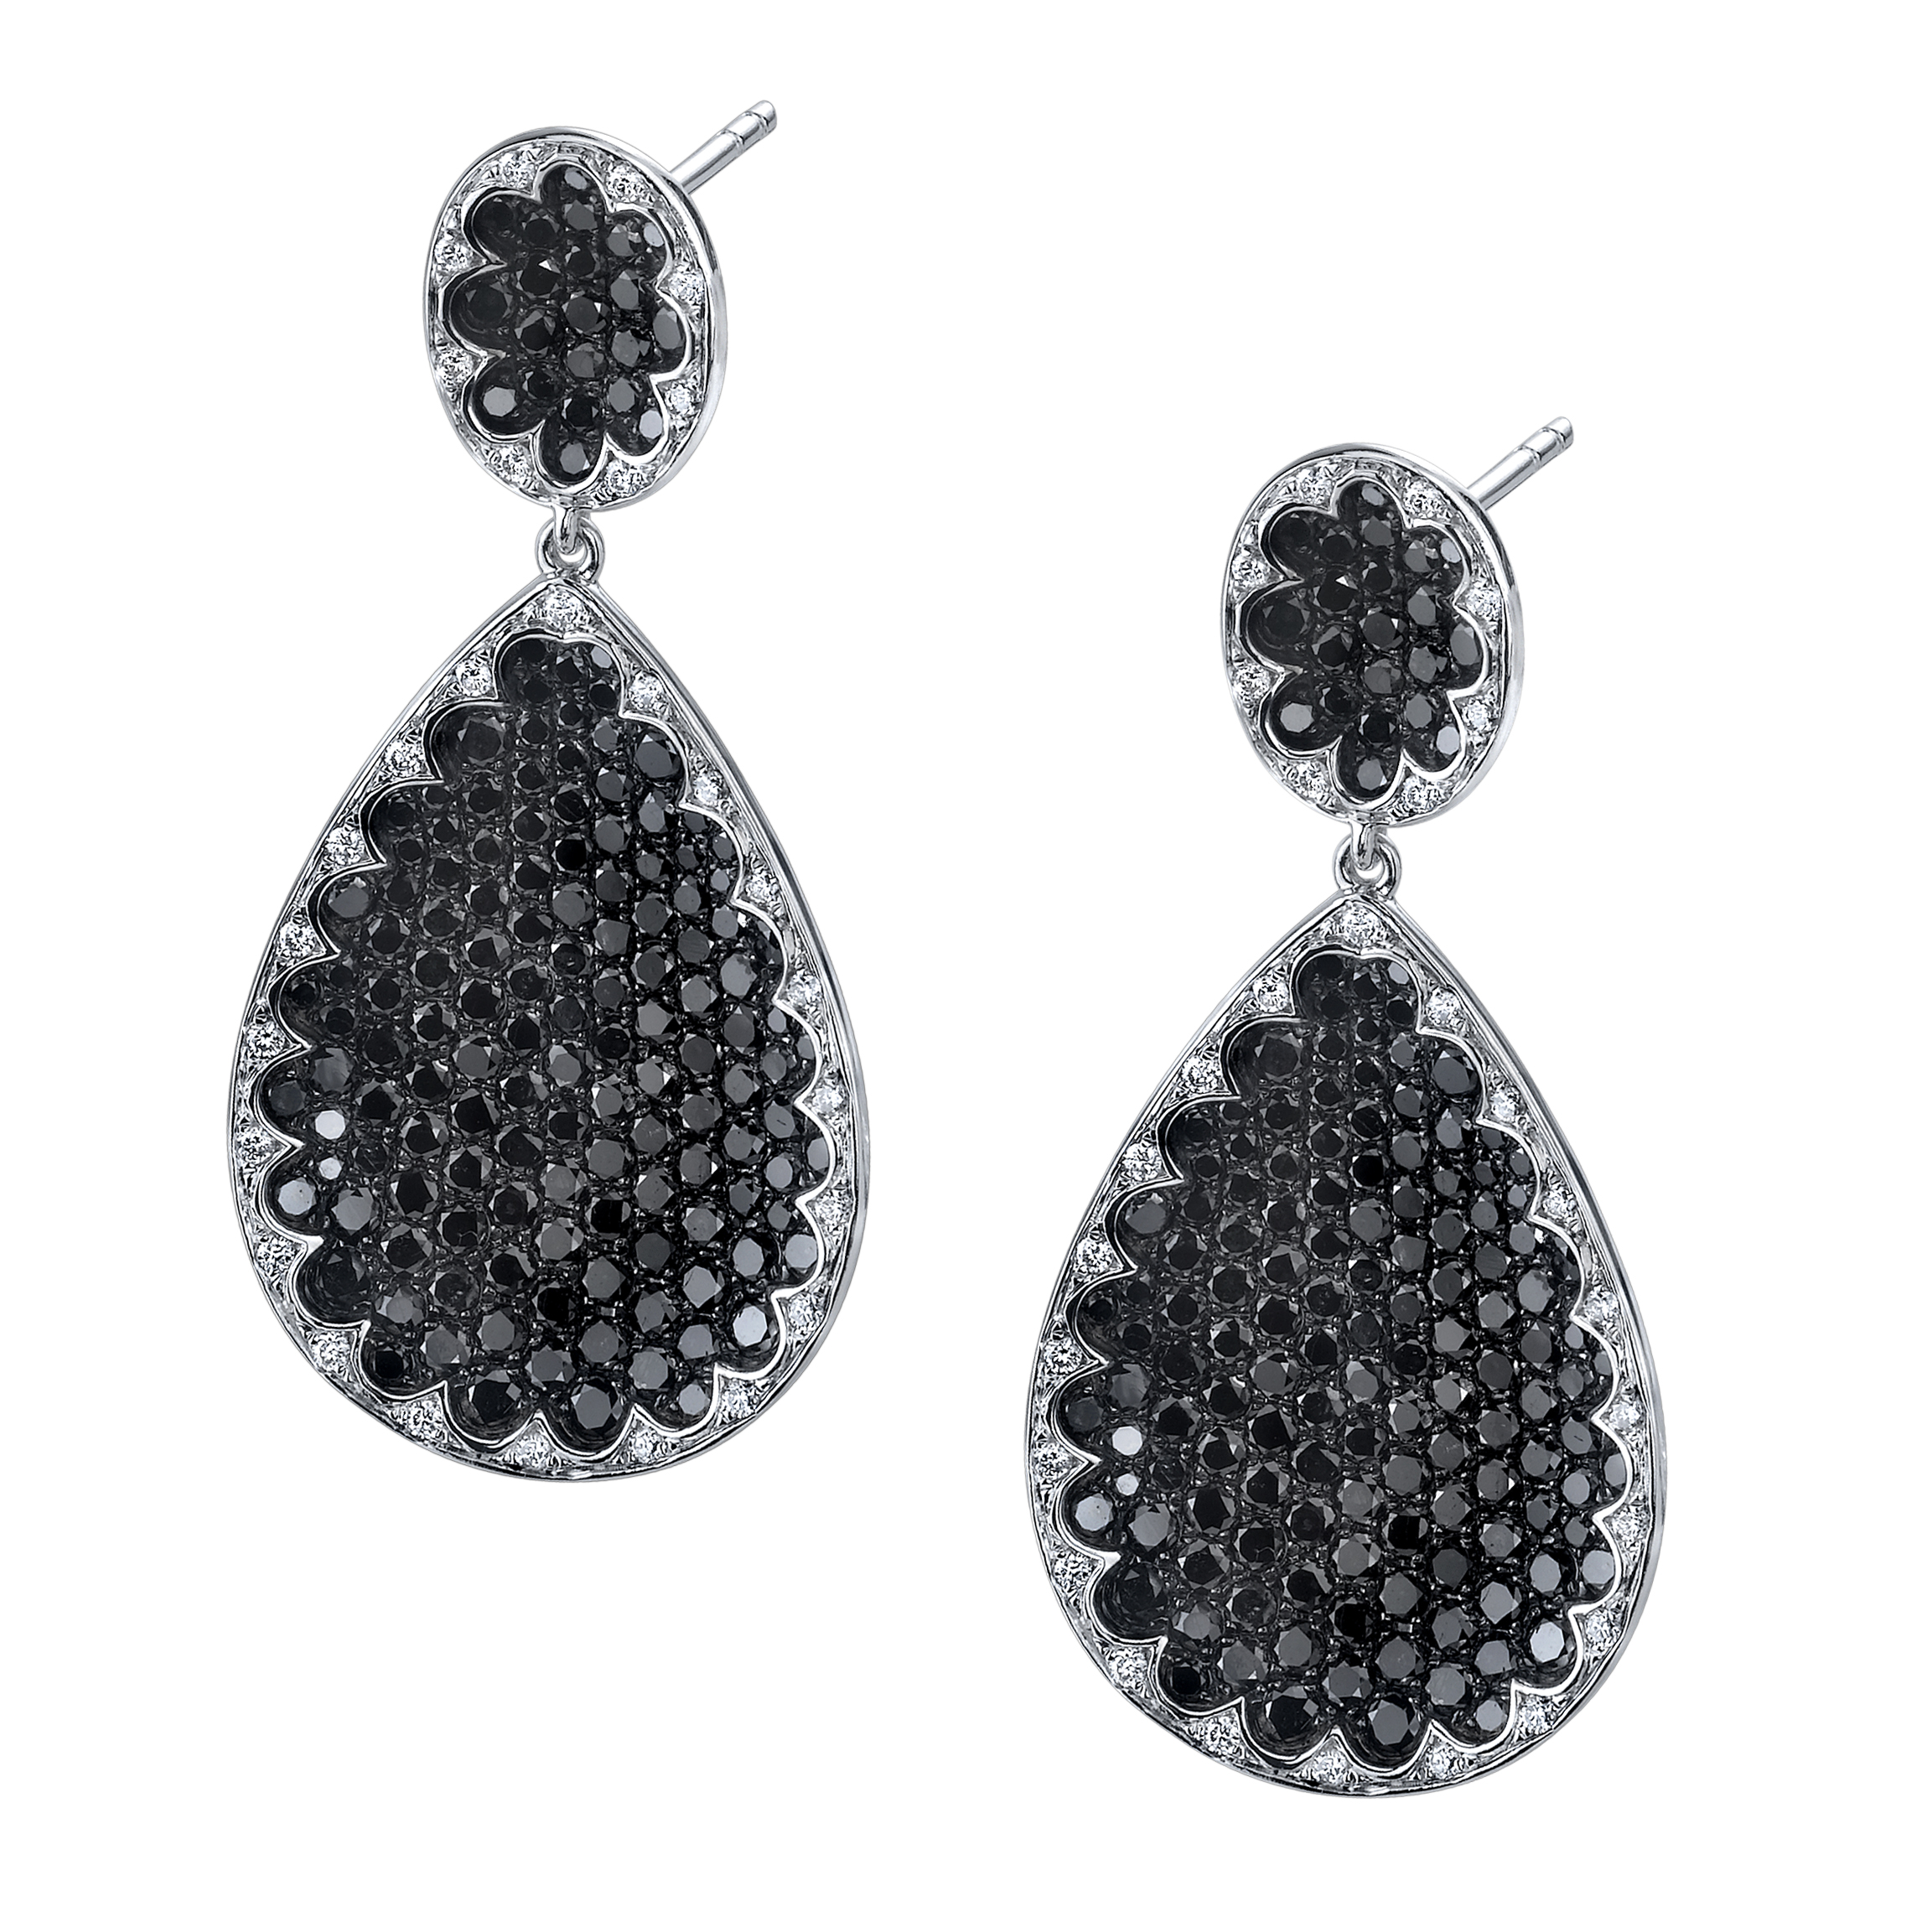 Sylvie Collection Glamorous black diamond drop earrings | JCK On Your Market